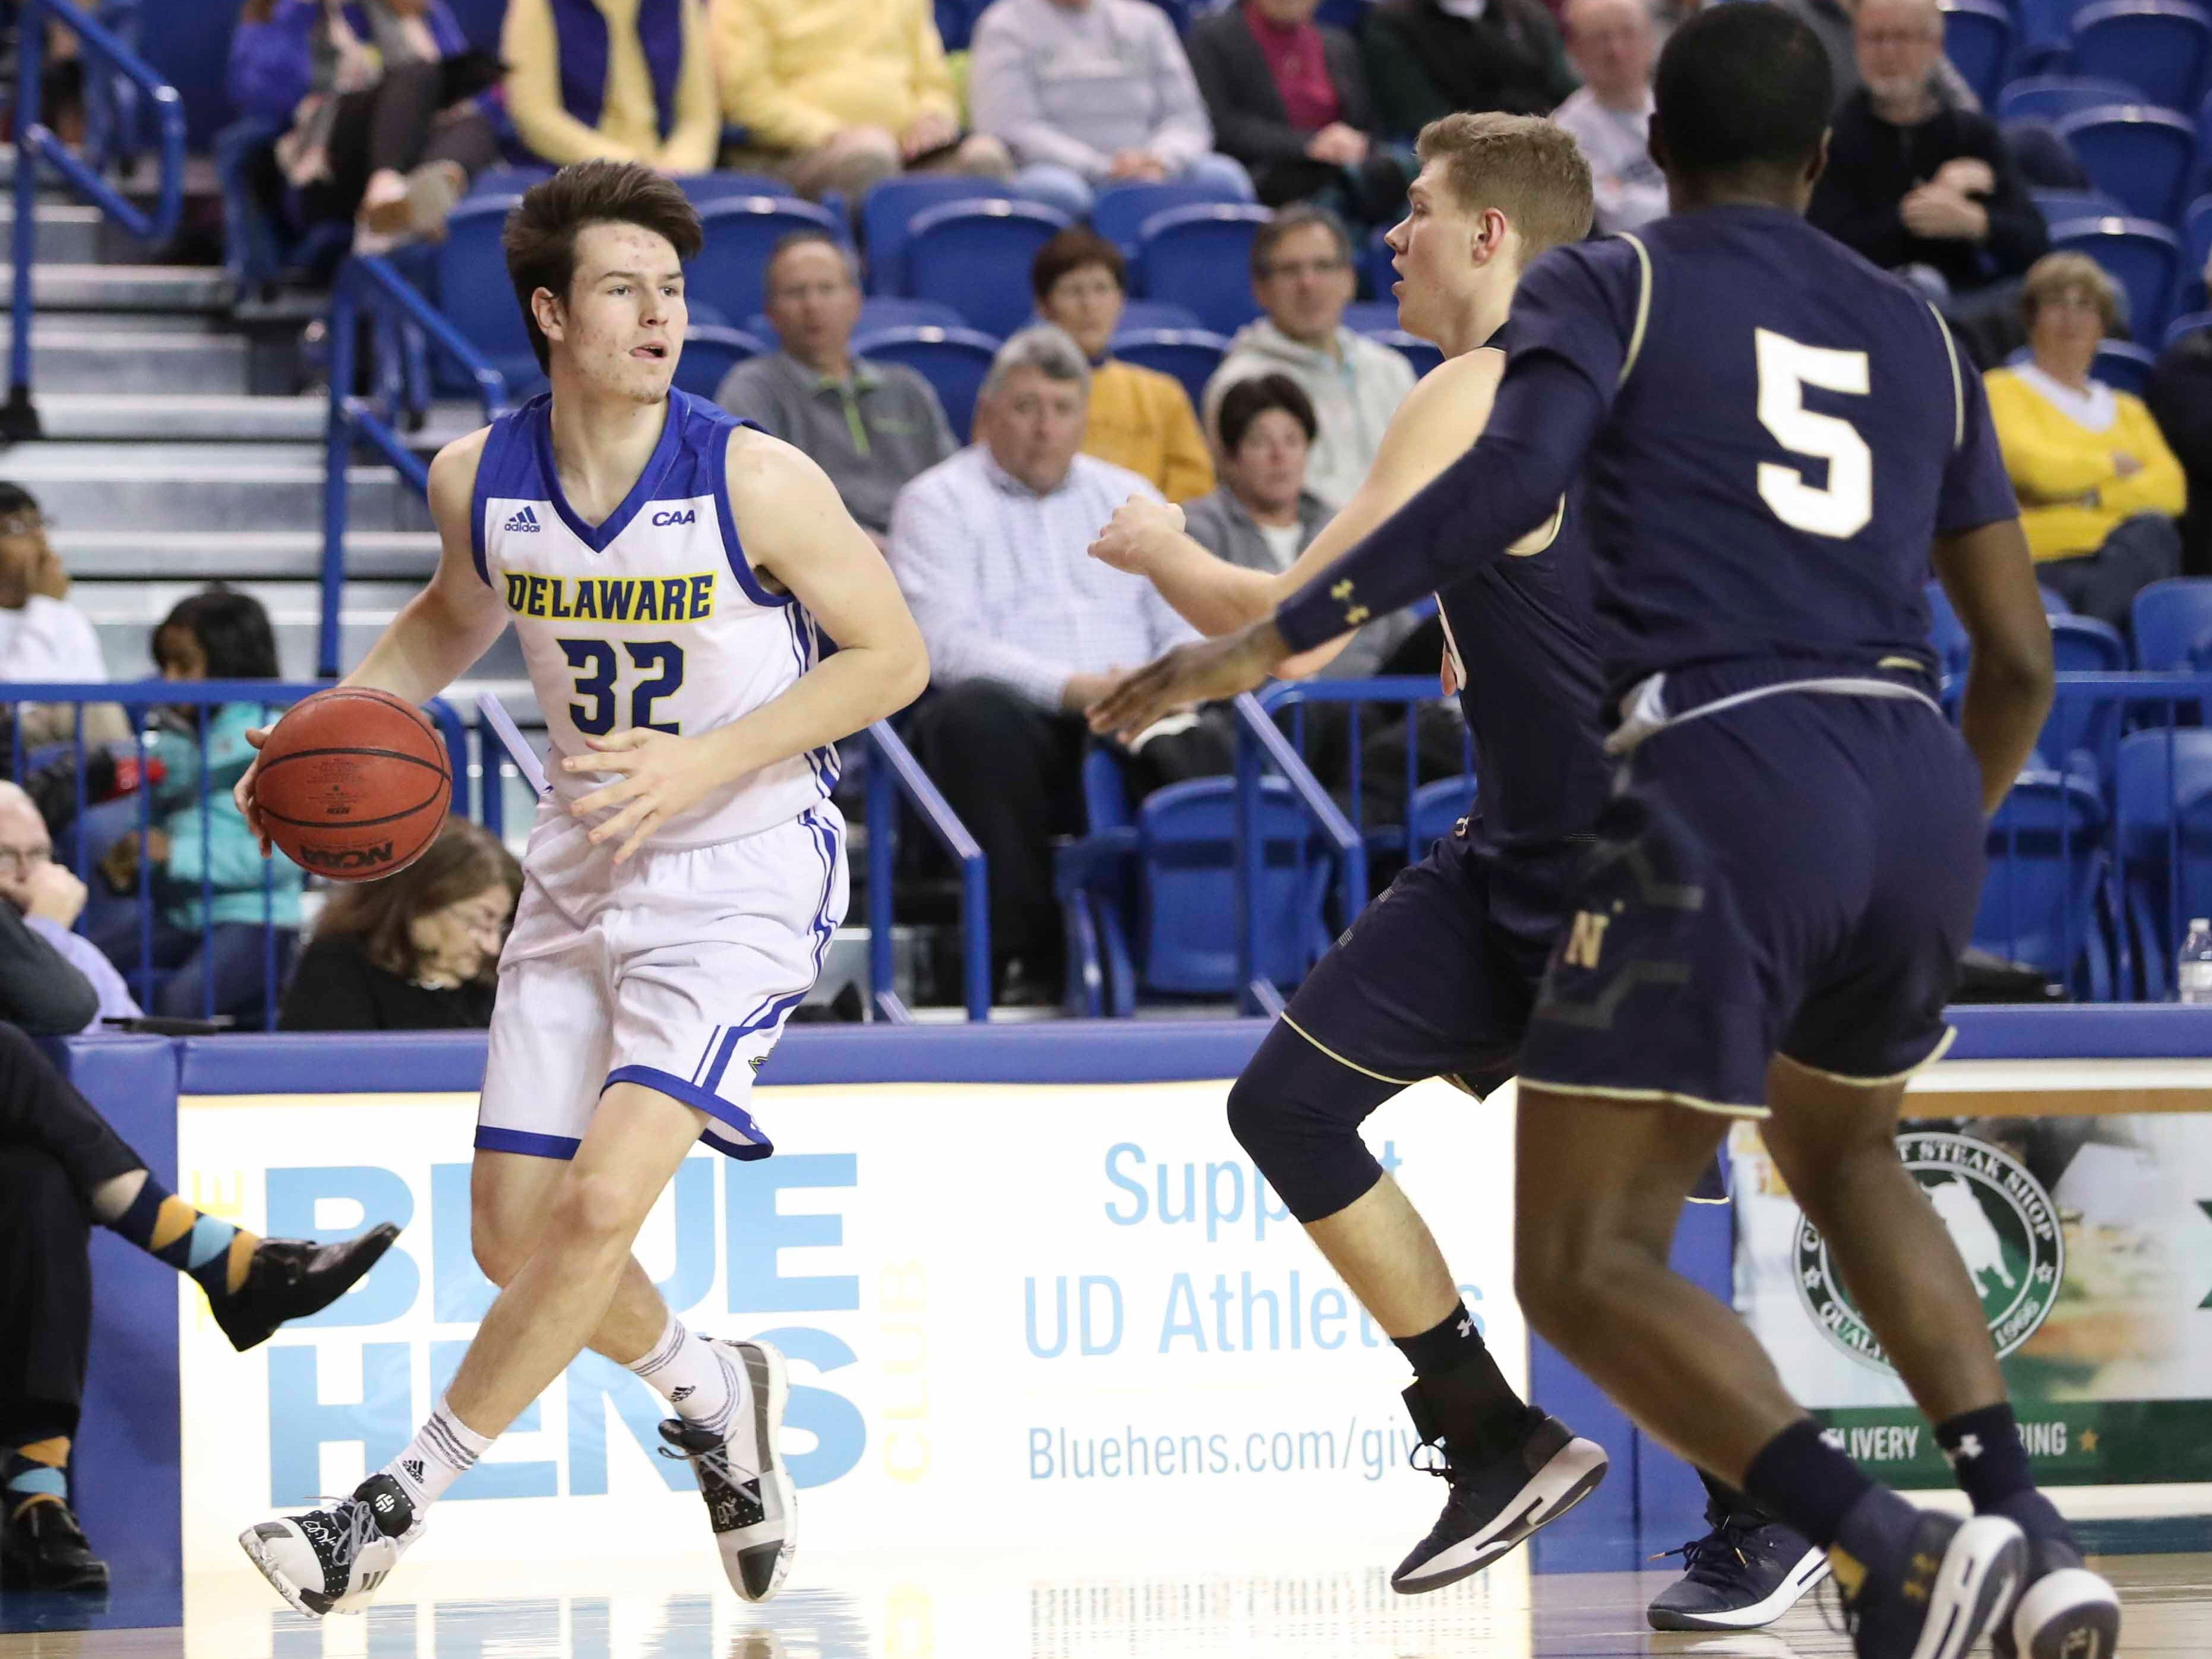 Delaware's Matt Veretto looks past the Navy defense in the first half at the Bob Carpenter Center Wednesday.